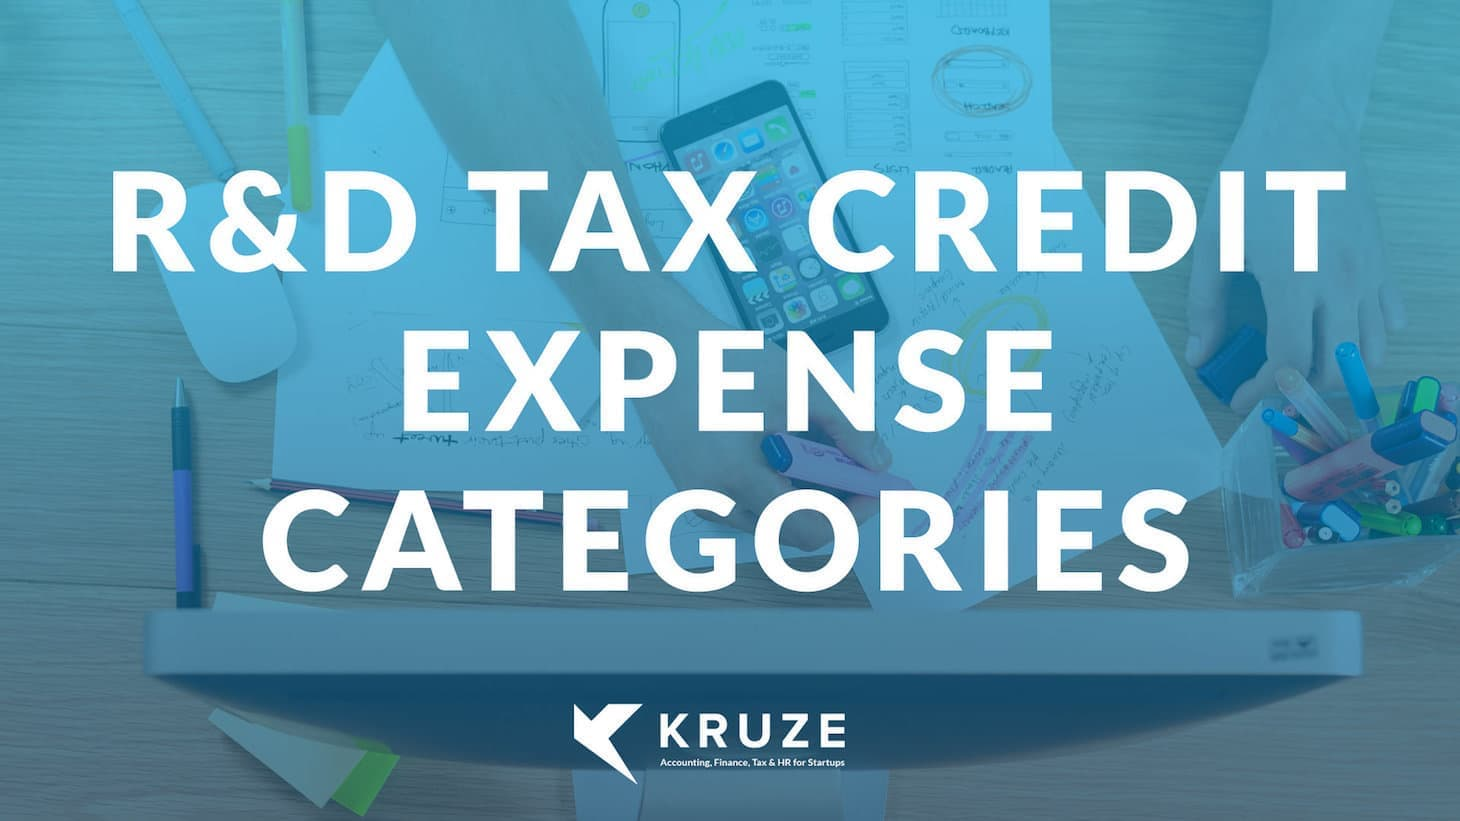 R&D Tax Credit Expense Categories